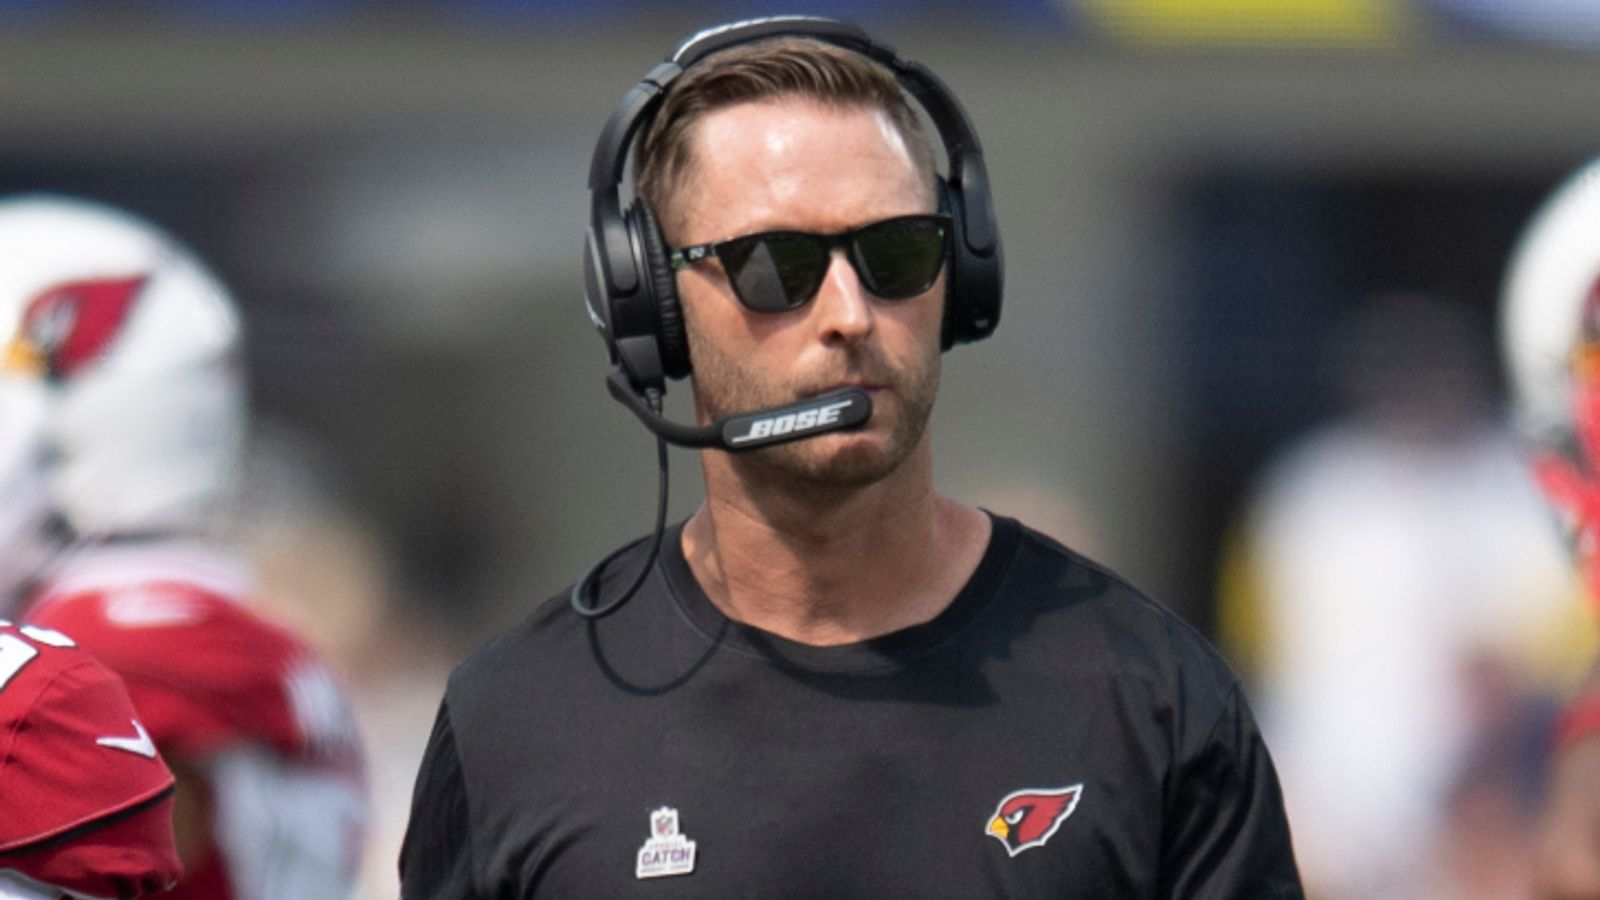 Kliff Kingsbury: Arizona Cardinals head coach tests positive for Covid-19 and will miss game vs Cleveland Browns